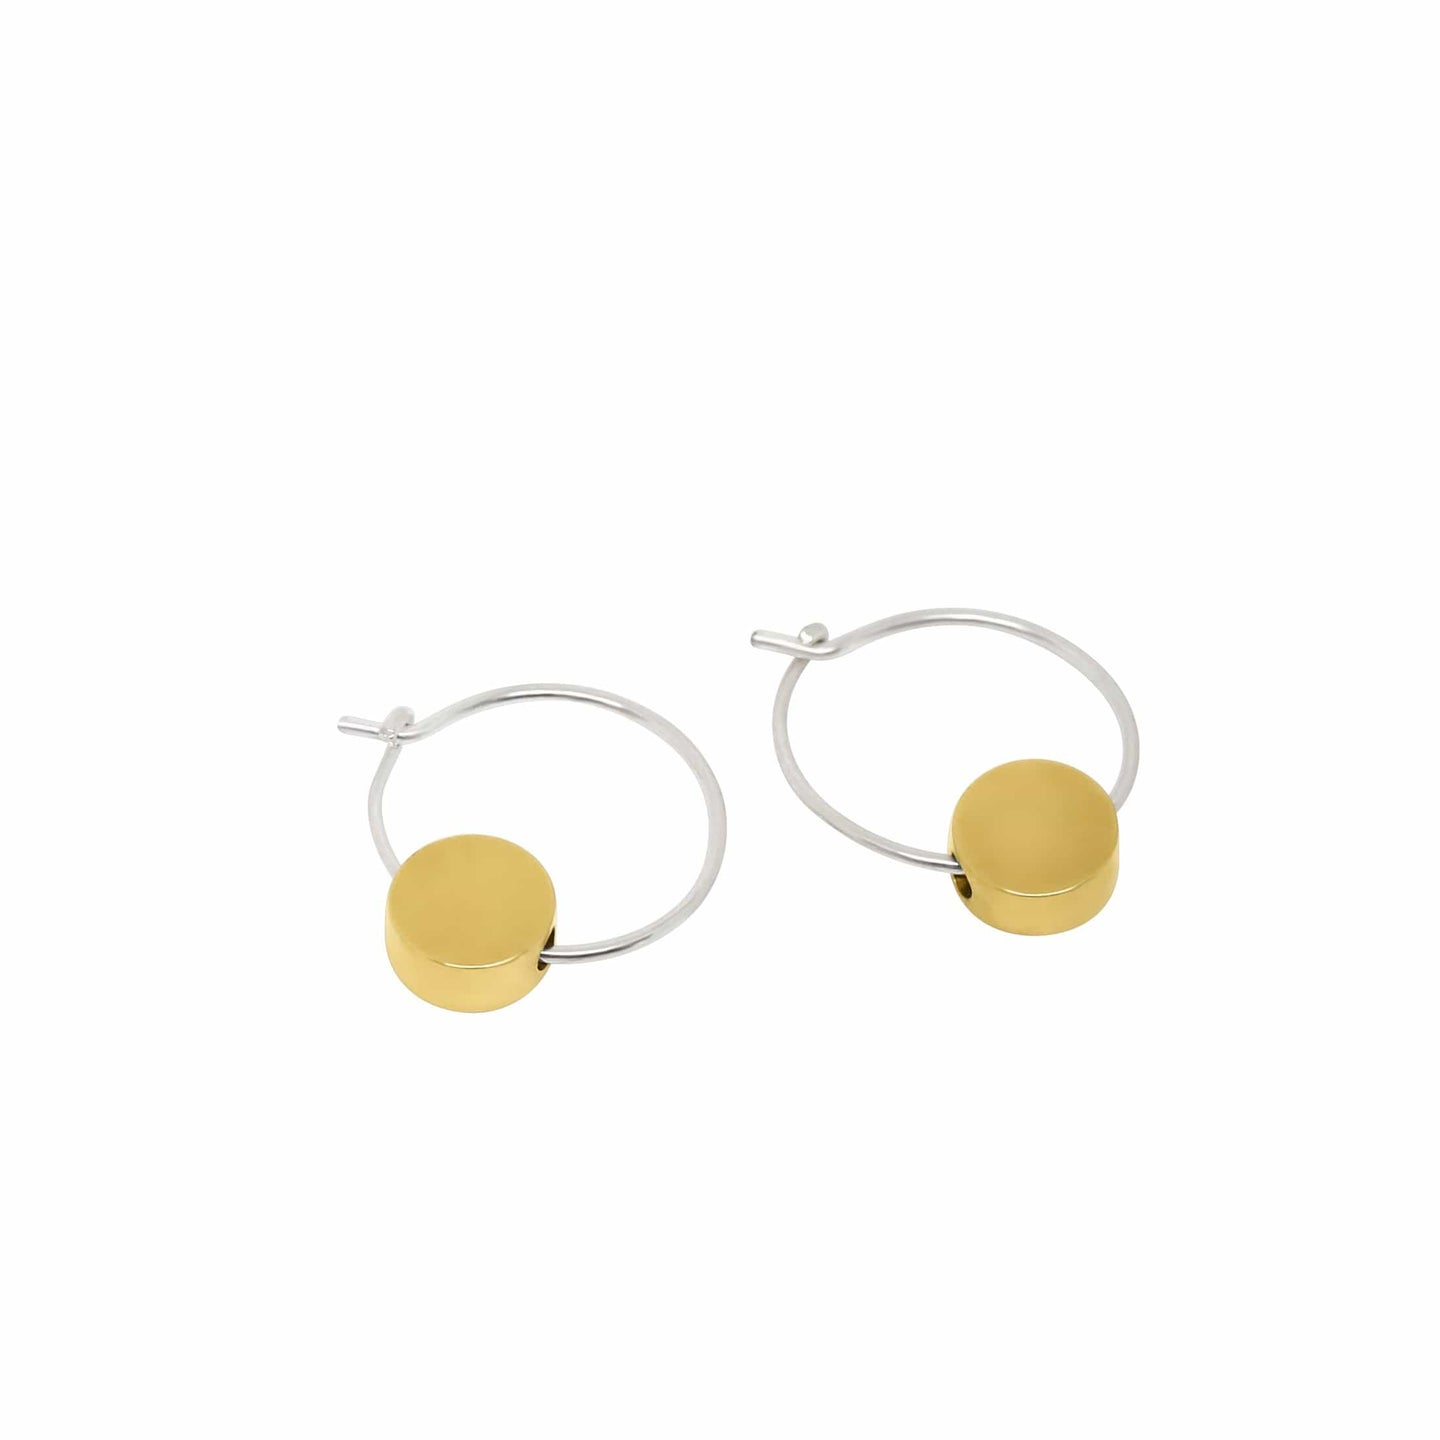 MyJulz - Gold Disc Earrings (Sterling Silver earrings with brass polished discs)